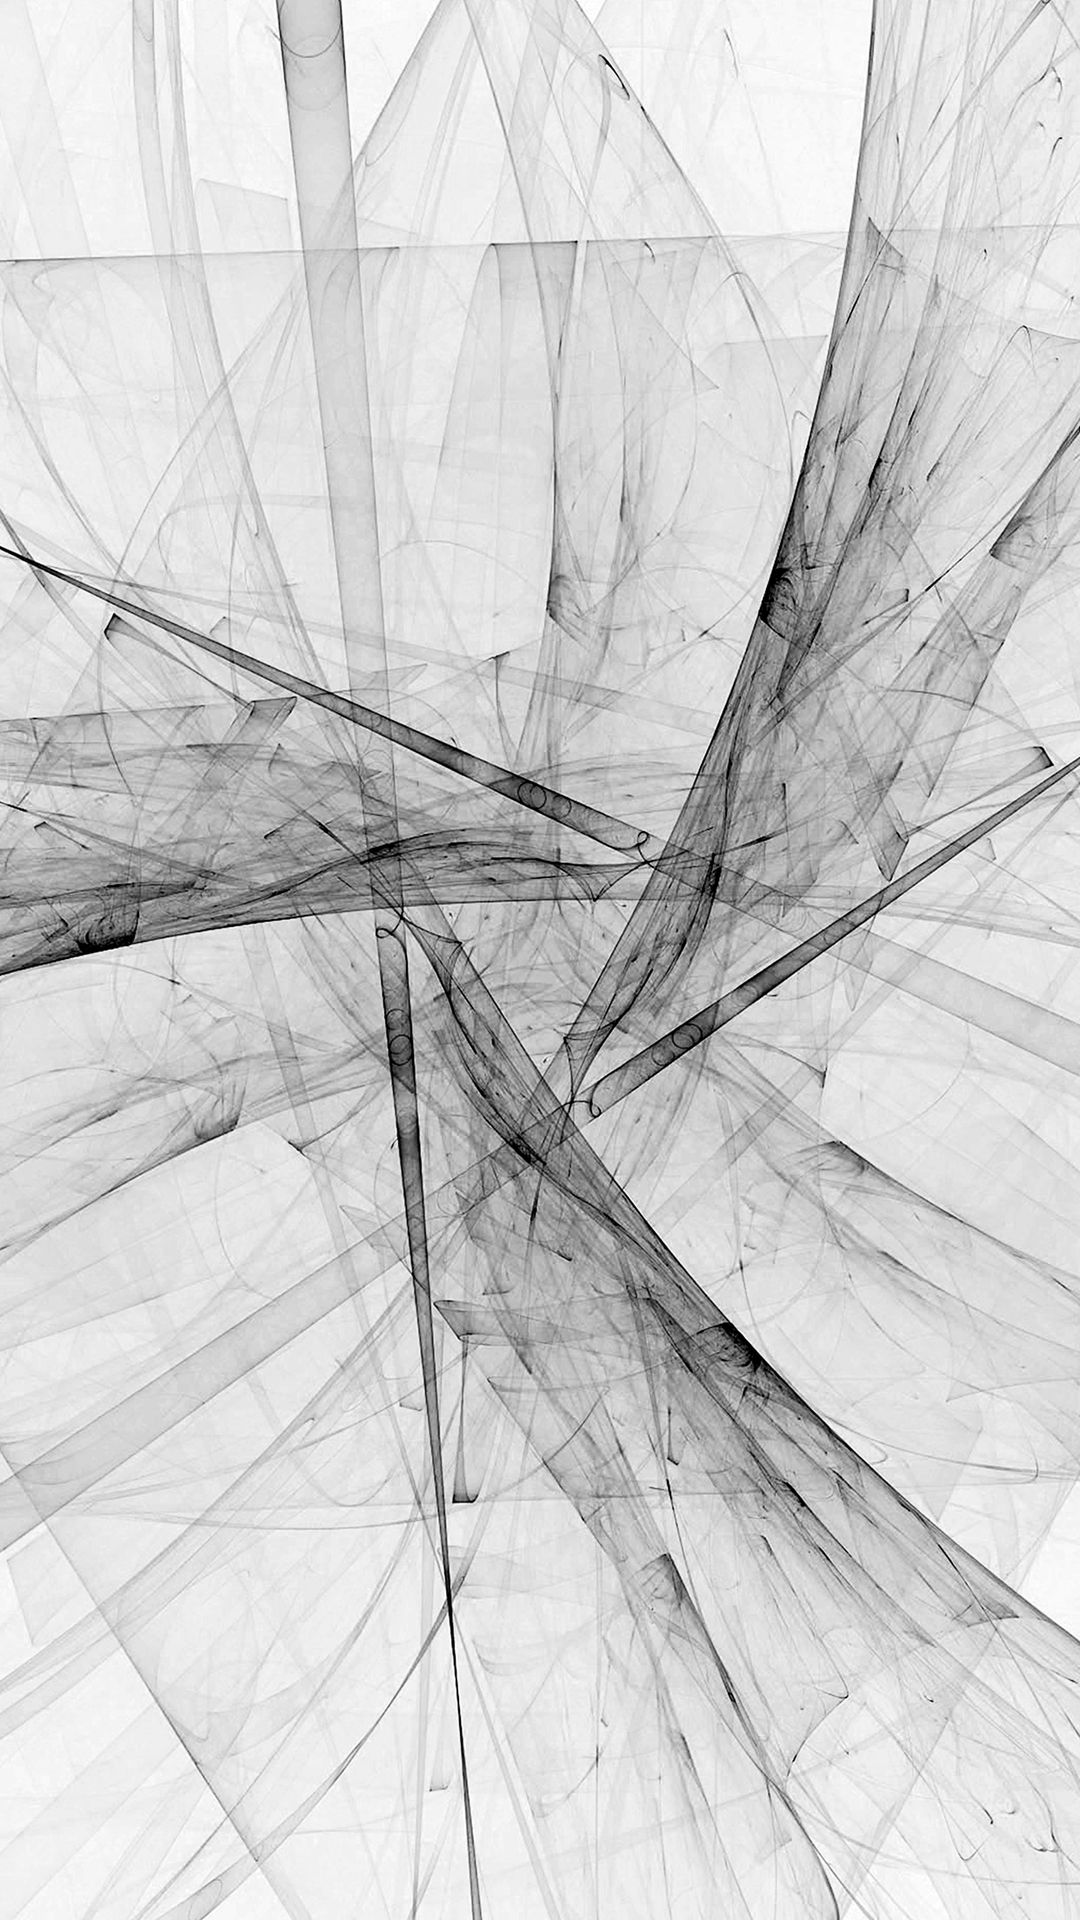 Triangle Art Abstract Bw White Pattern Iphone 6 Wallpaper New Wallpaper Iphone White Pattern Wallpaper White Wallpaper For Iphone